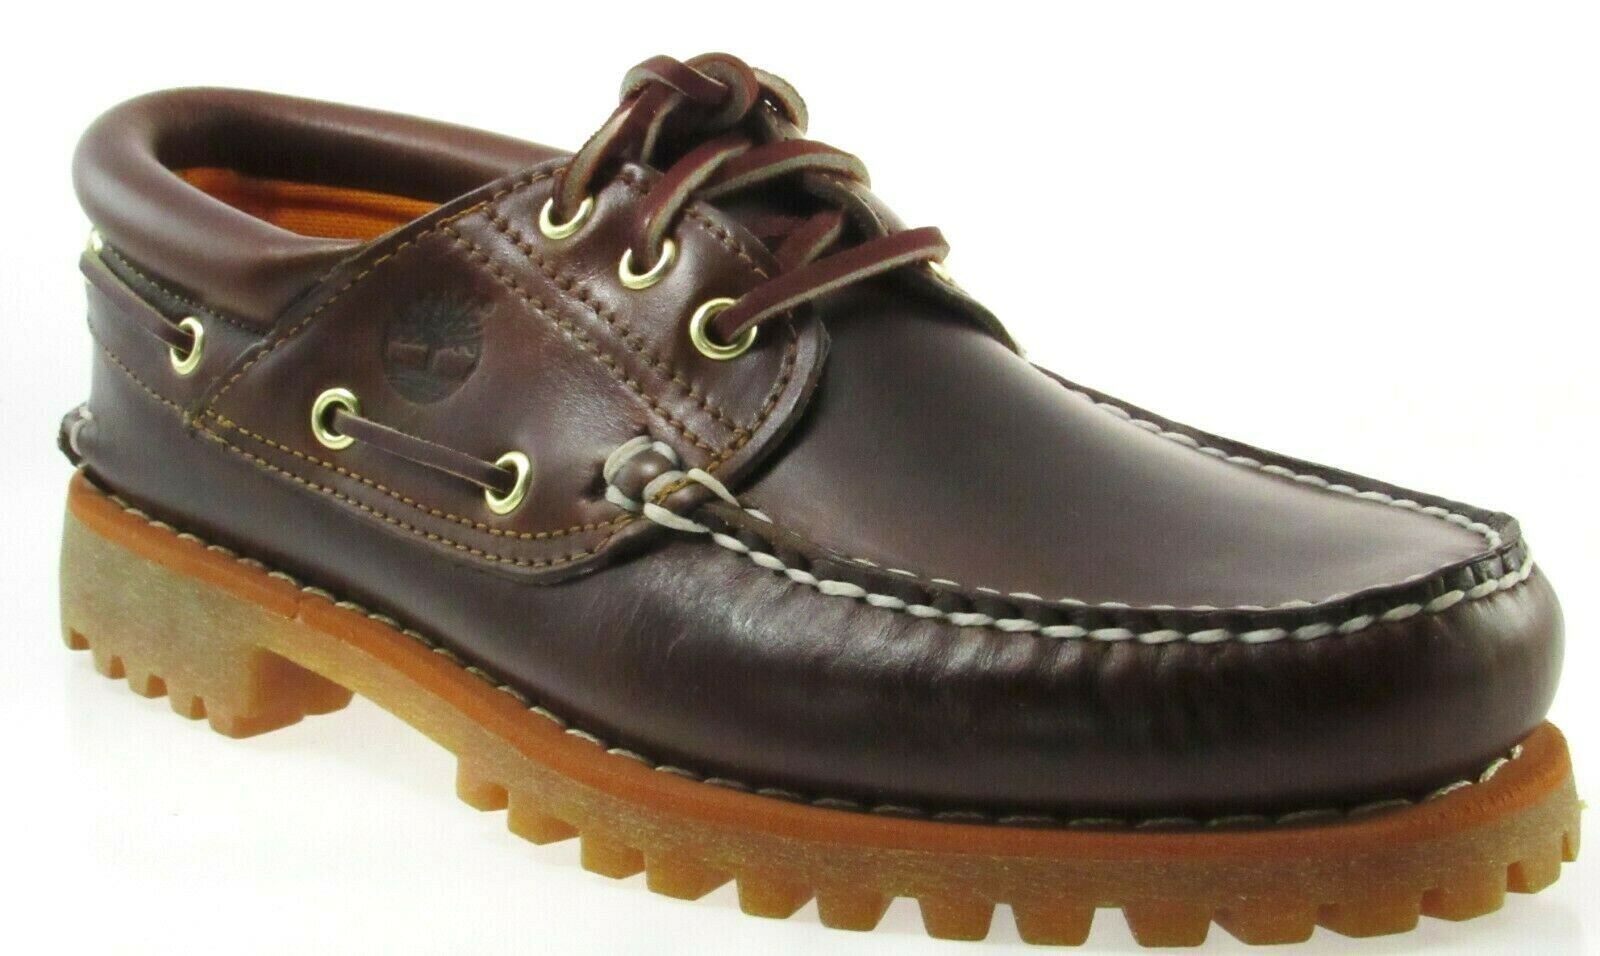 Primary image for TIMBERLAND 6500A TFO CLASSIC 3 EYE LUG MEN'S BROWN LEATHER BOAT SHOES